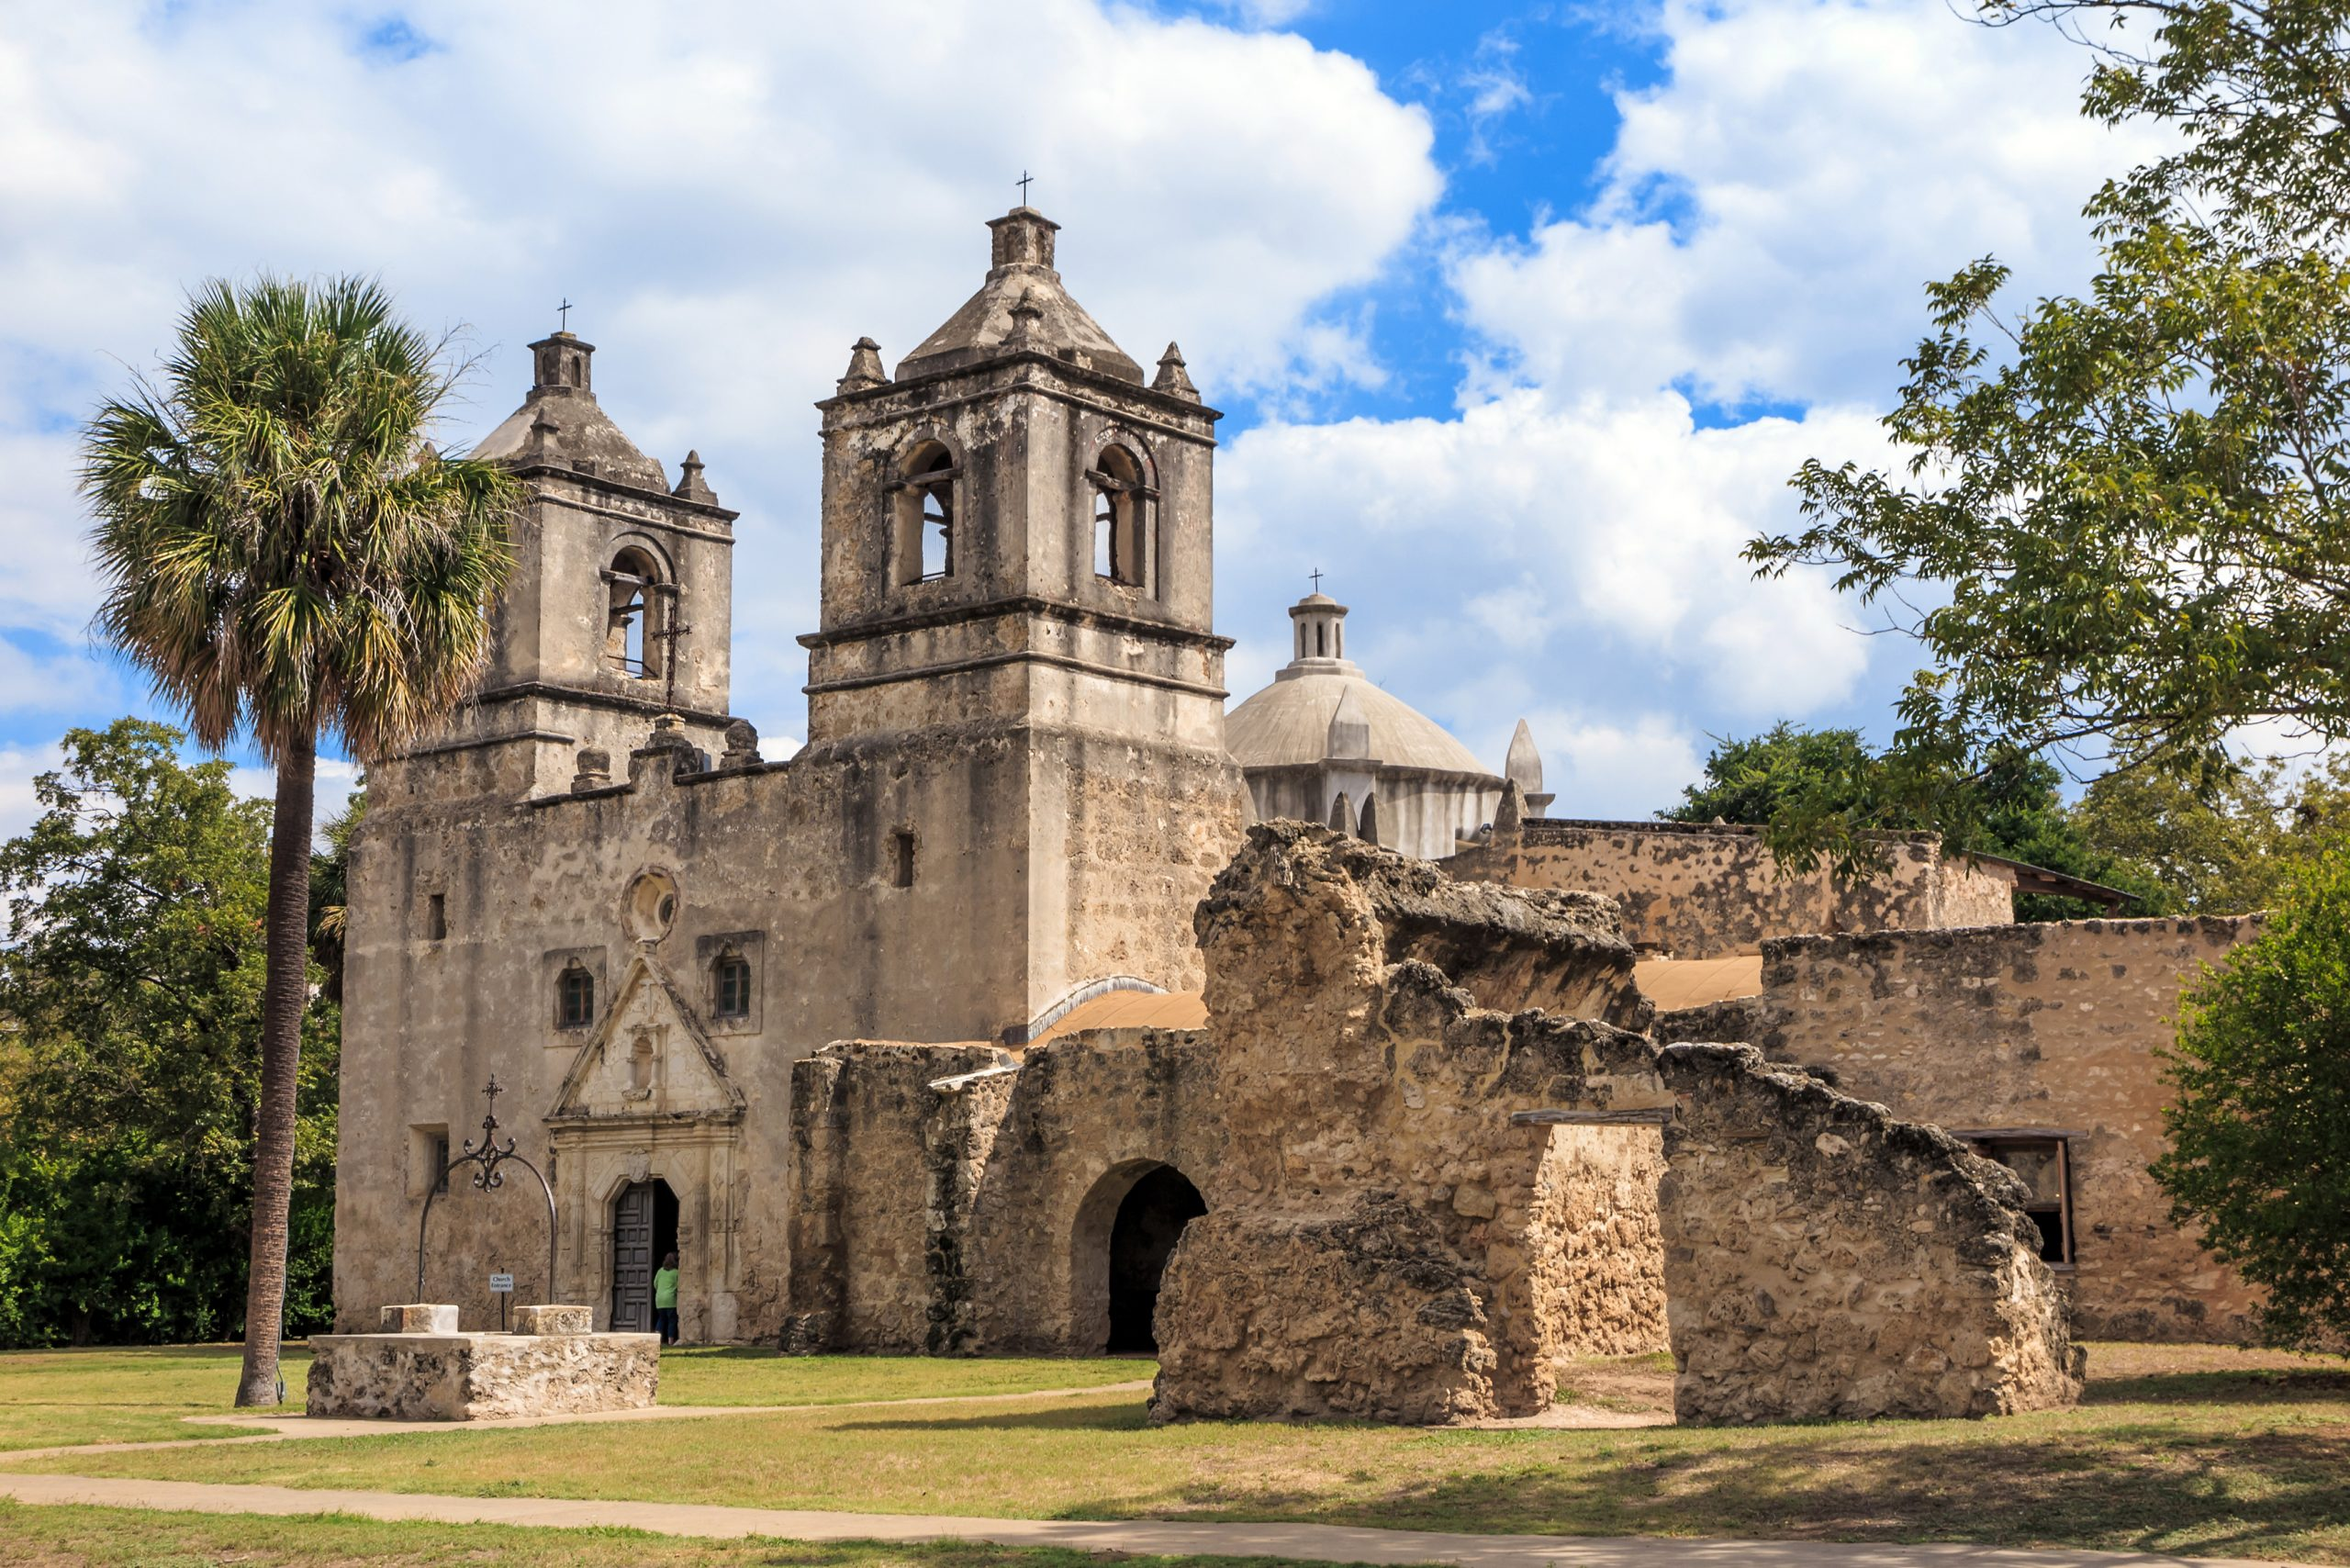 Exterior of Mission Concepion, one of the best photography locations in San Antonio TX